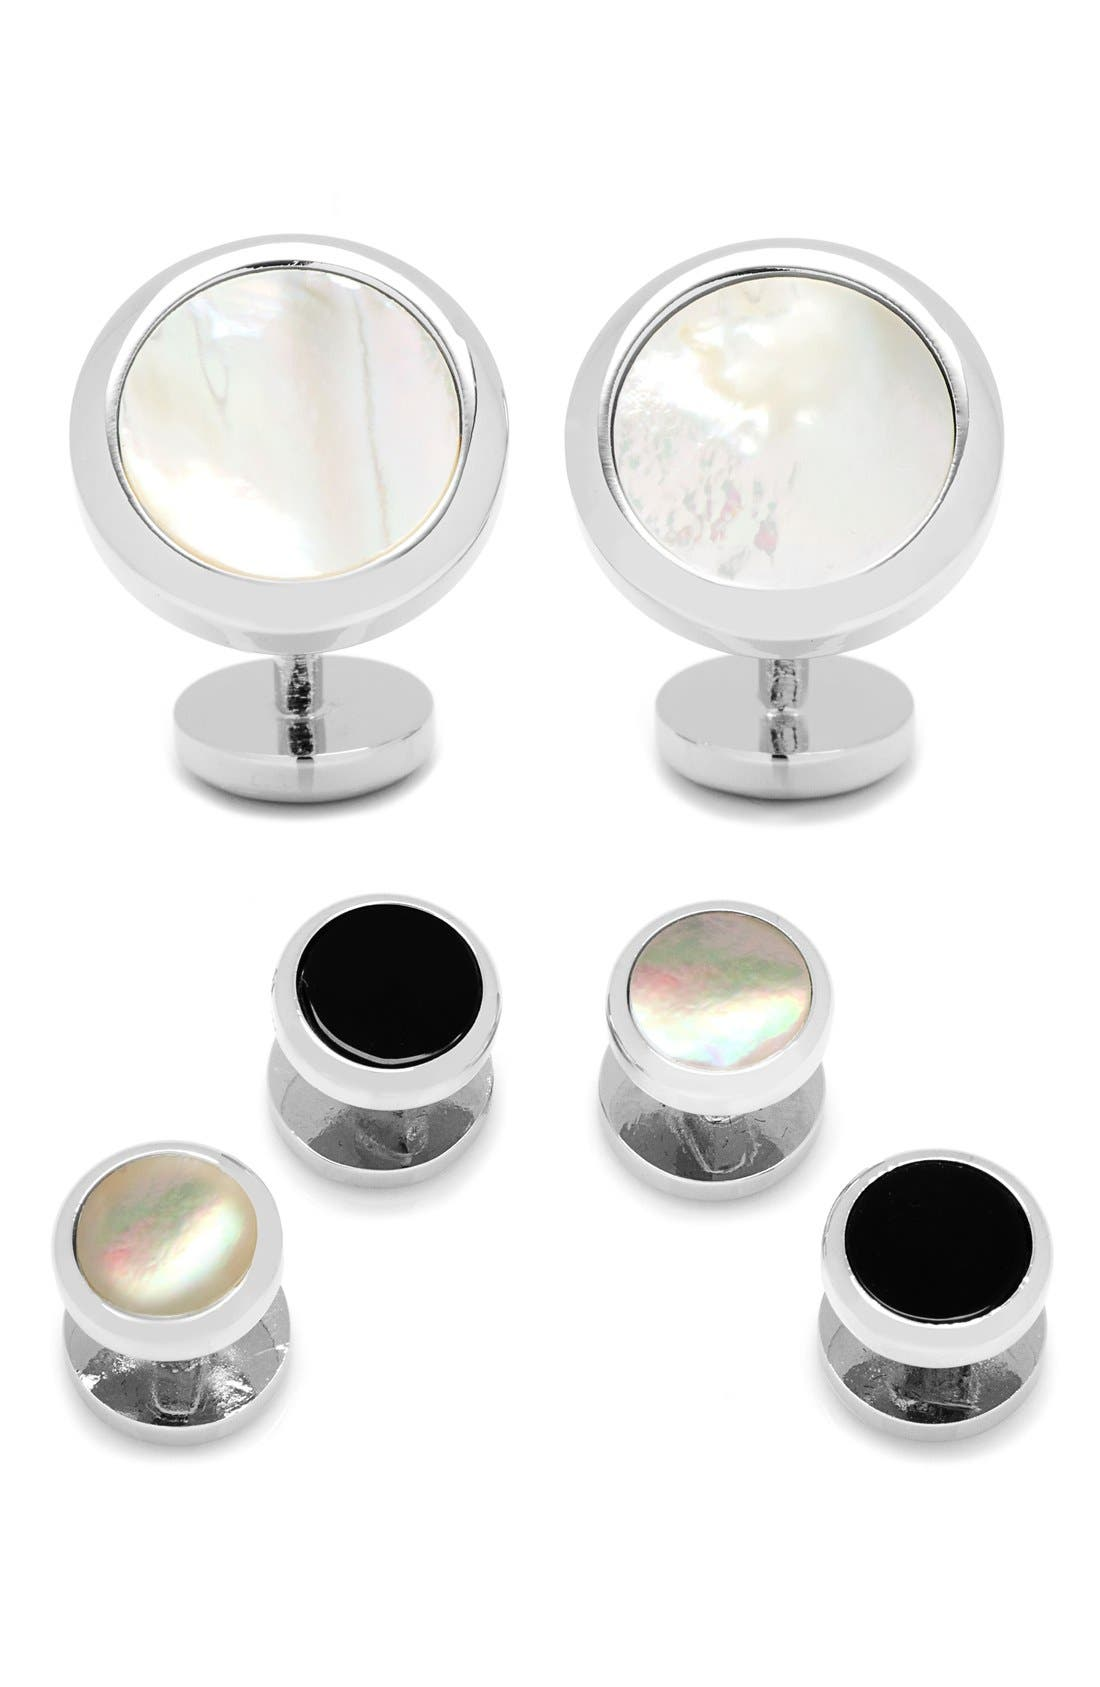 Main Image - Ox and Bull Trading Co. Mother-of-Pearl Cuff Links & Shirt Stud Set